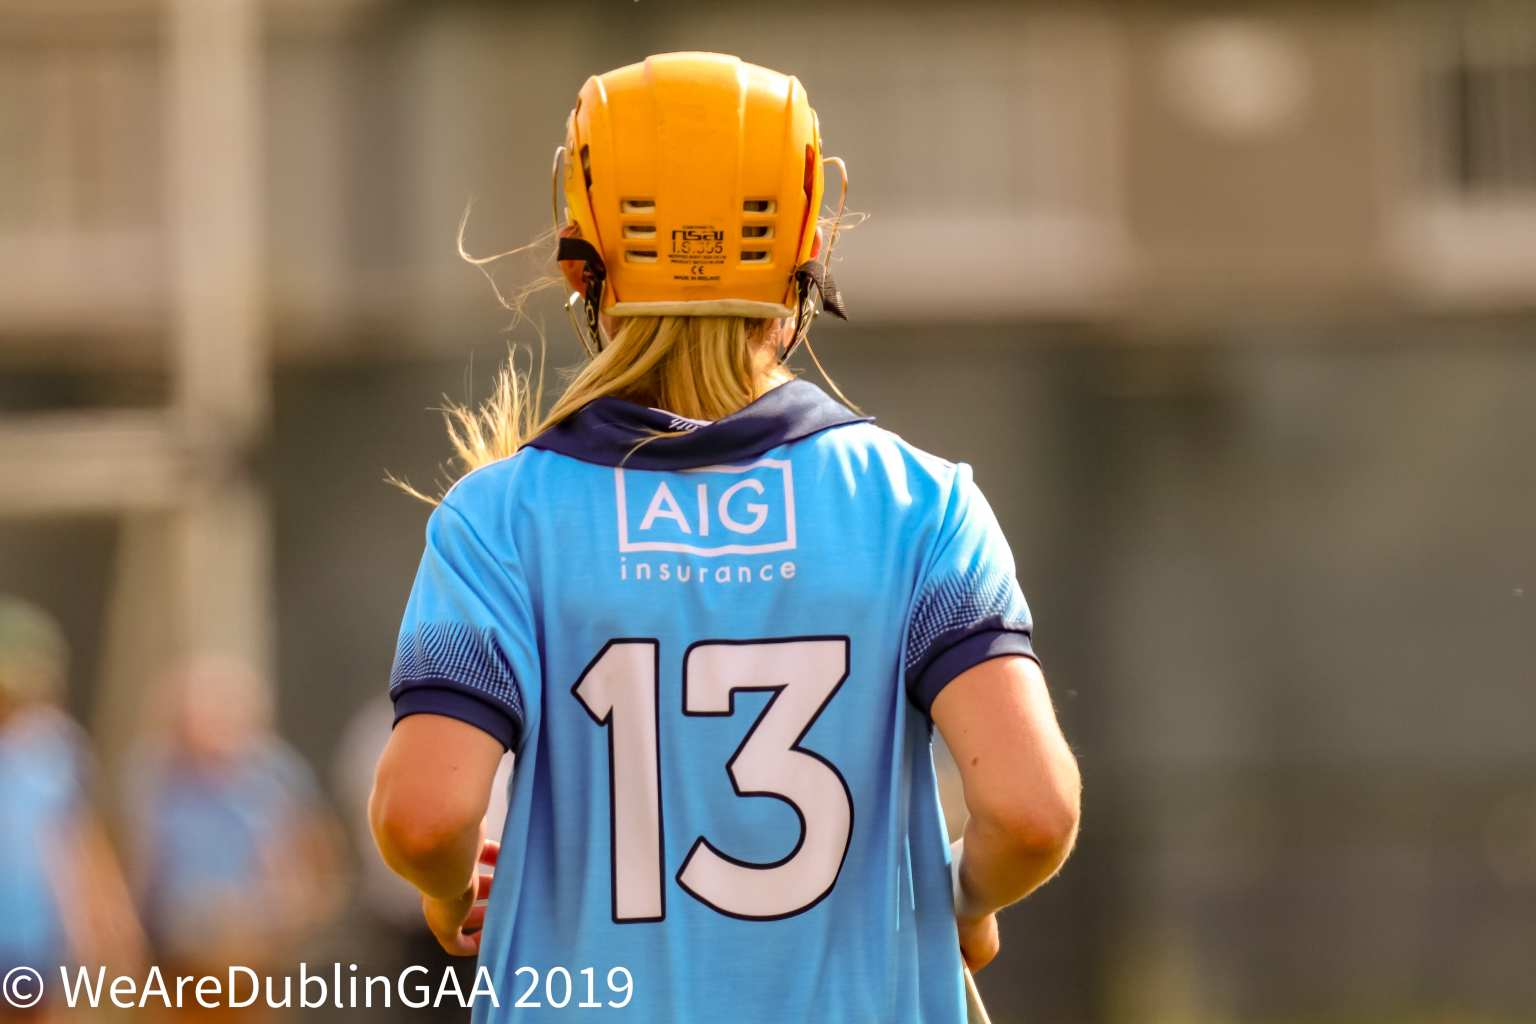 Dublin Camogie player with number 13 on her back, Dublin Camogie announced today that the Sports Ireland facilities in Abbotstown will be their new home.